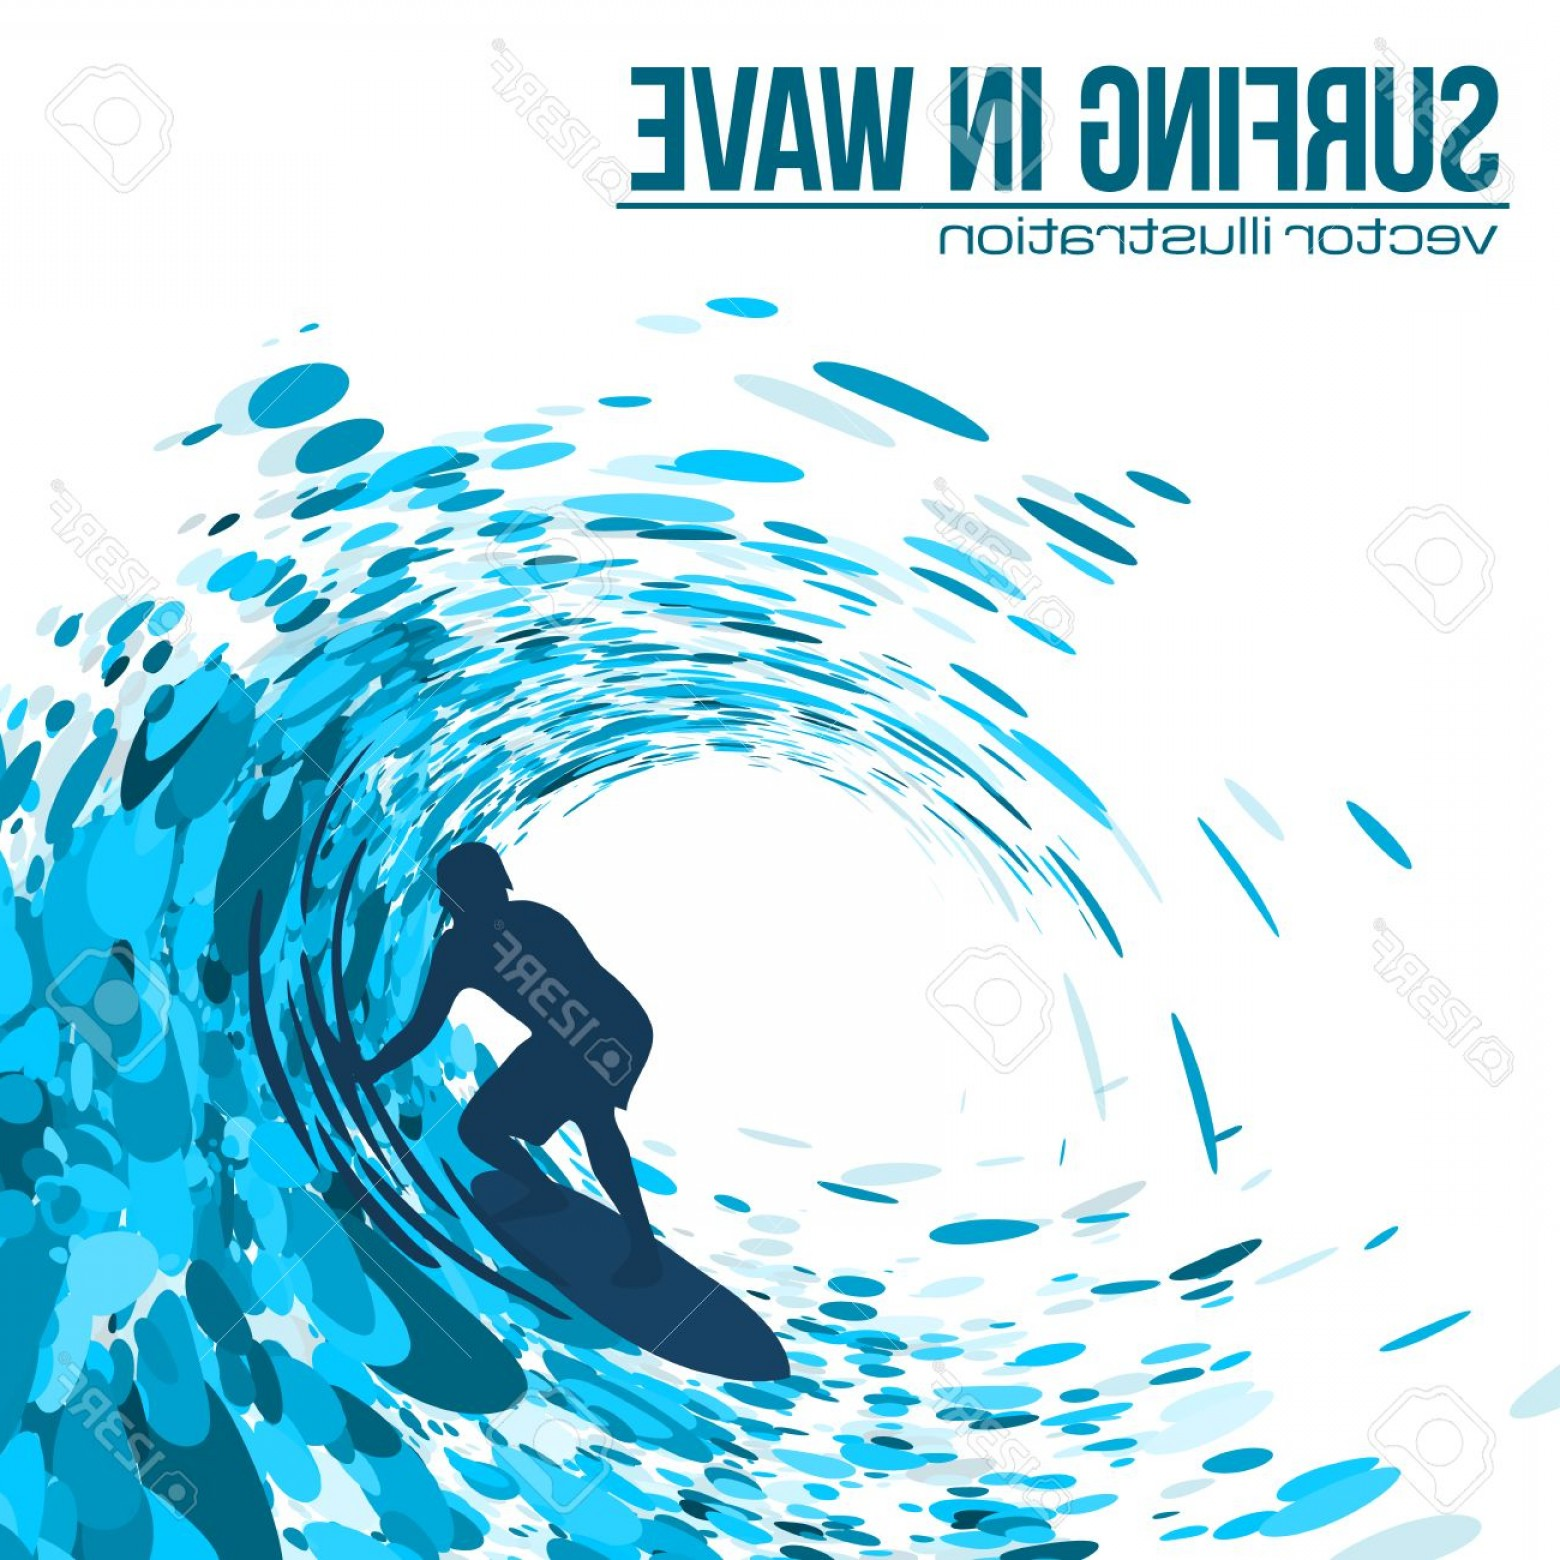 Waves With Surfer Silhouette Vector: Photostock Vector Vector Surfer Silhouette In Blue Wave On White Background